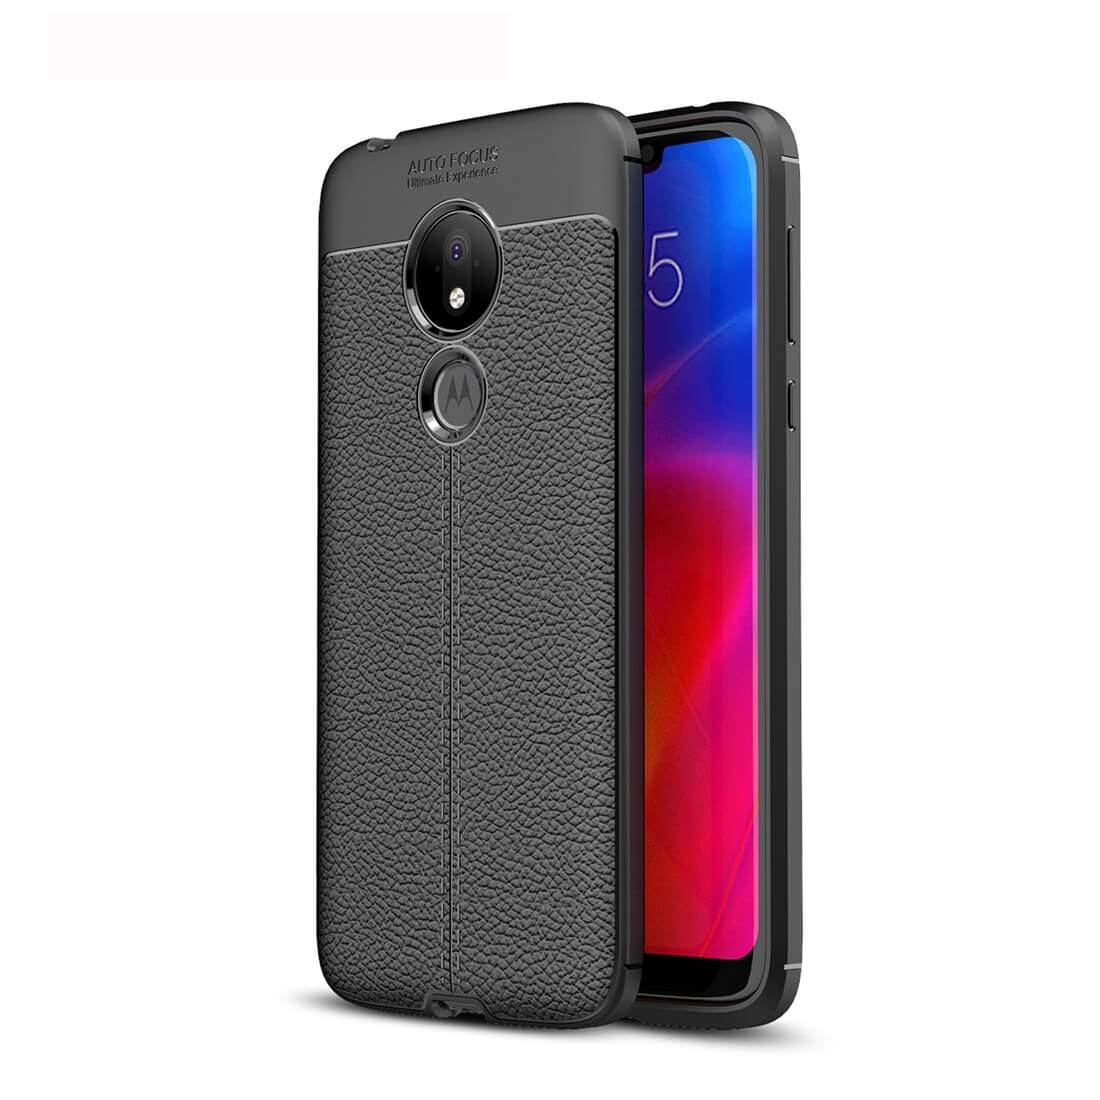 FORCELL PATTERN TPU kryt Motorola Moto G7 Power černý